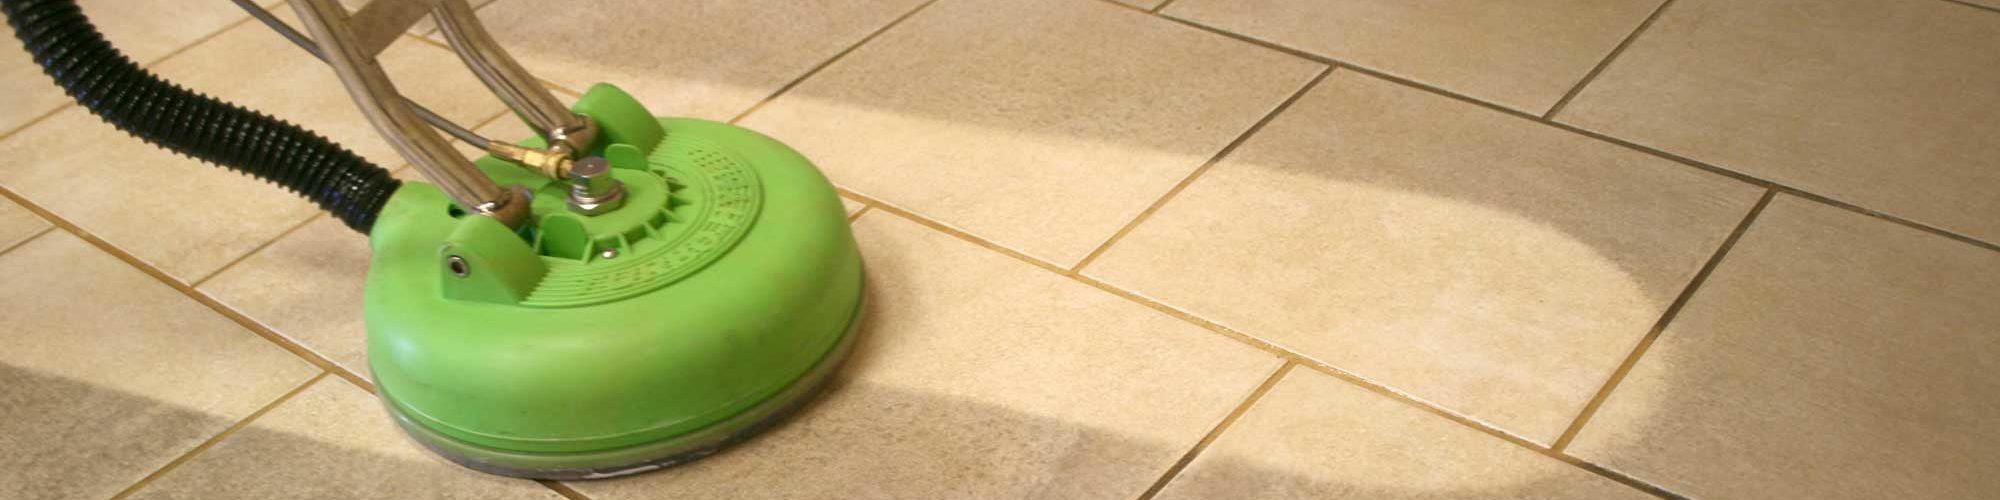 Professional-Grout-and-Tile-Cleaning | Generations Carpet Cleaning